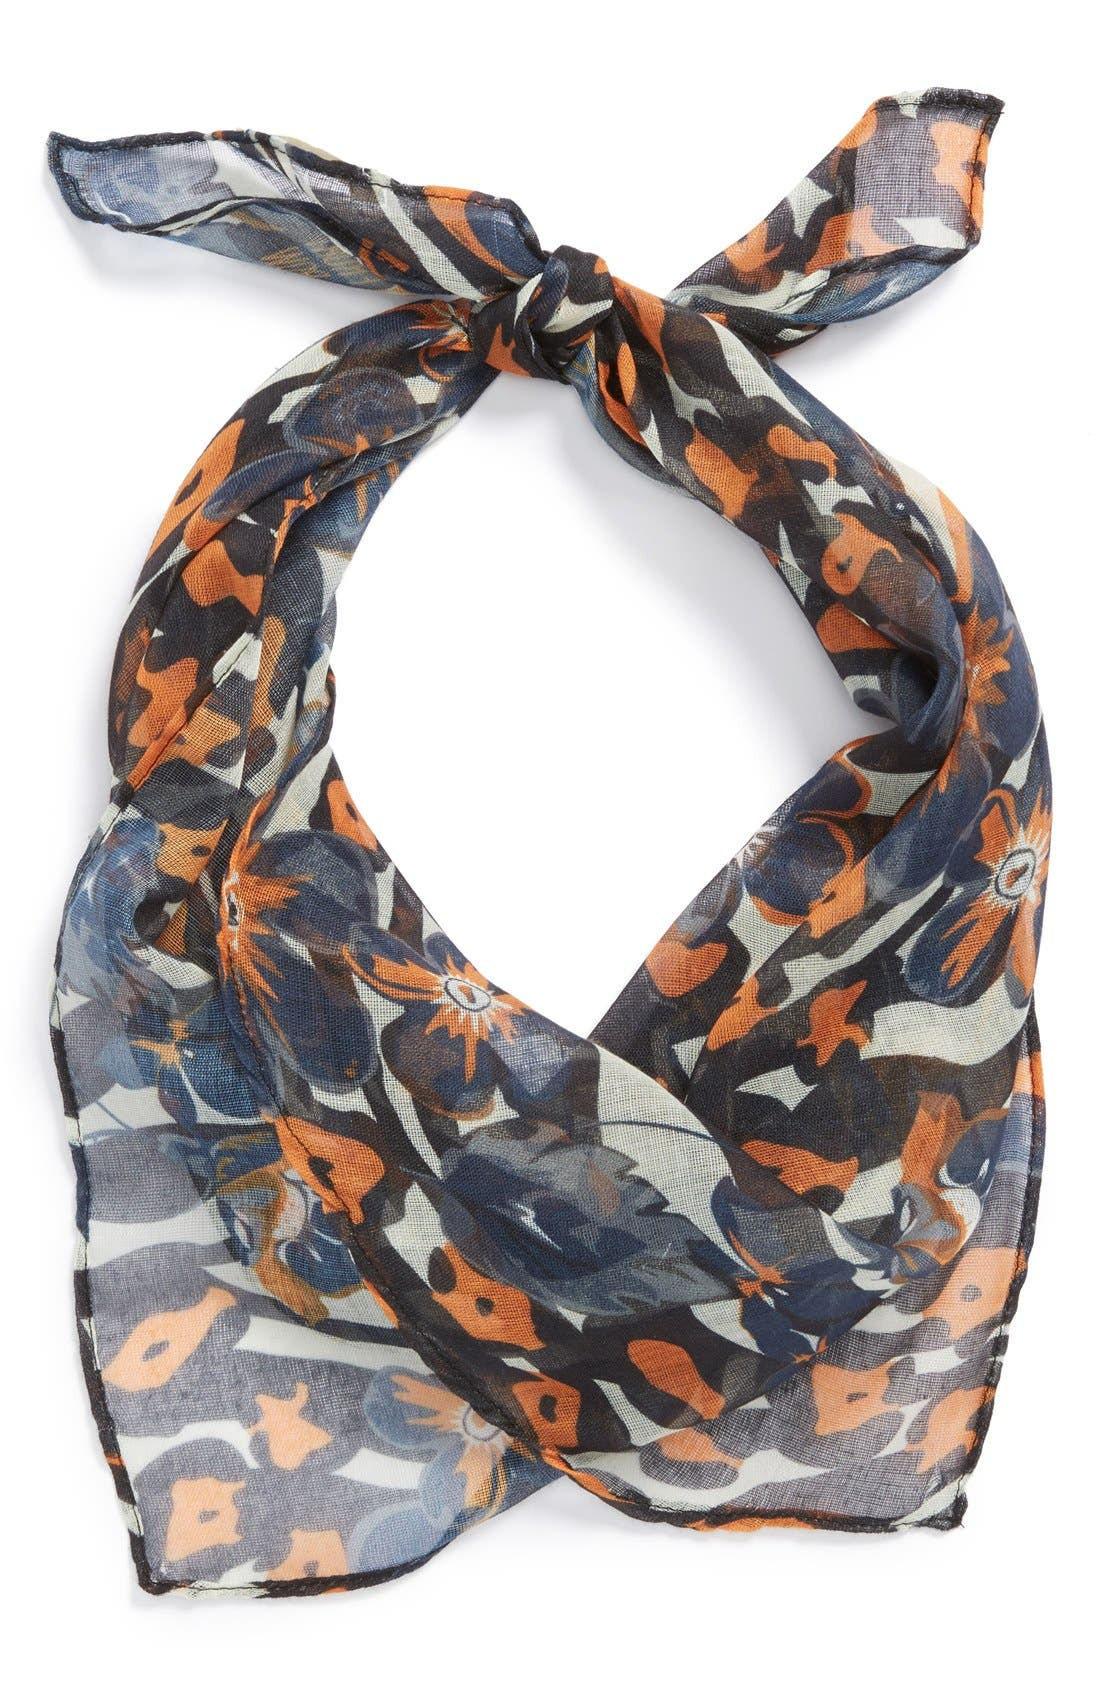 Alternate Image 1 Selected - Front Row Society 'Microflower' Neckerchief